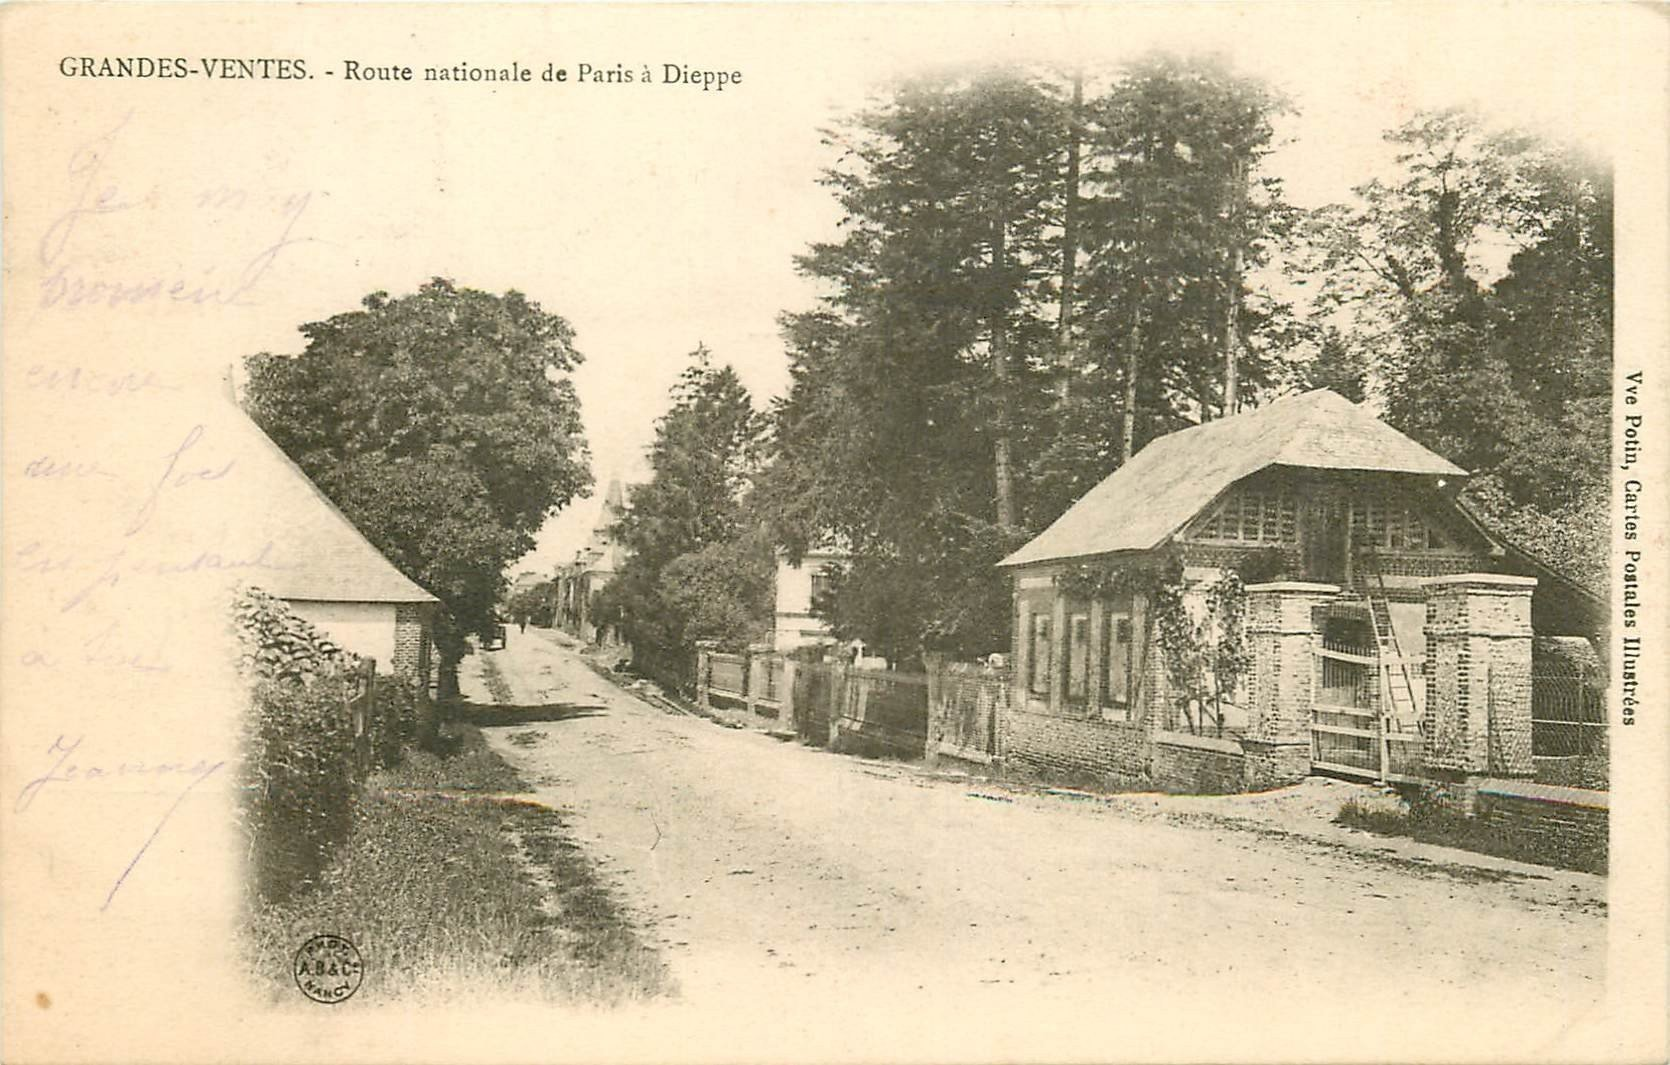 carte postale ancienne 76 GRANDES-VENTES. Route Nationale Paris Dieppe vers 1905